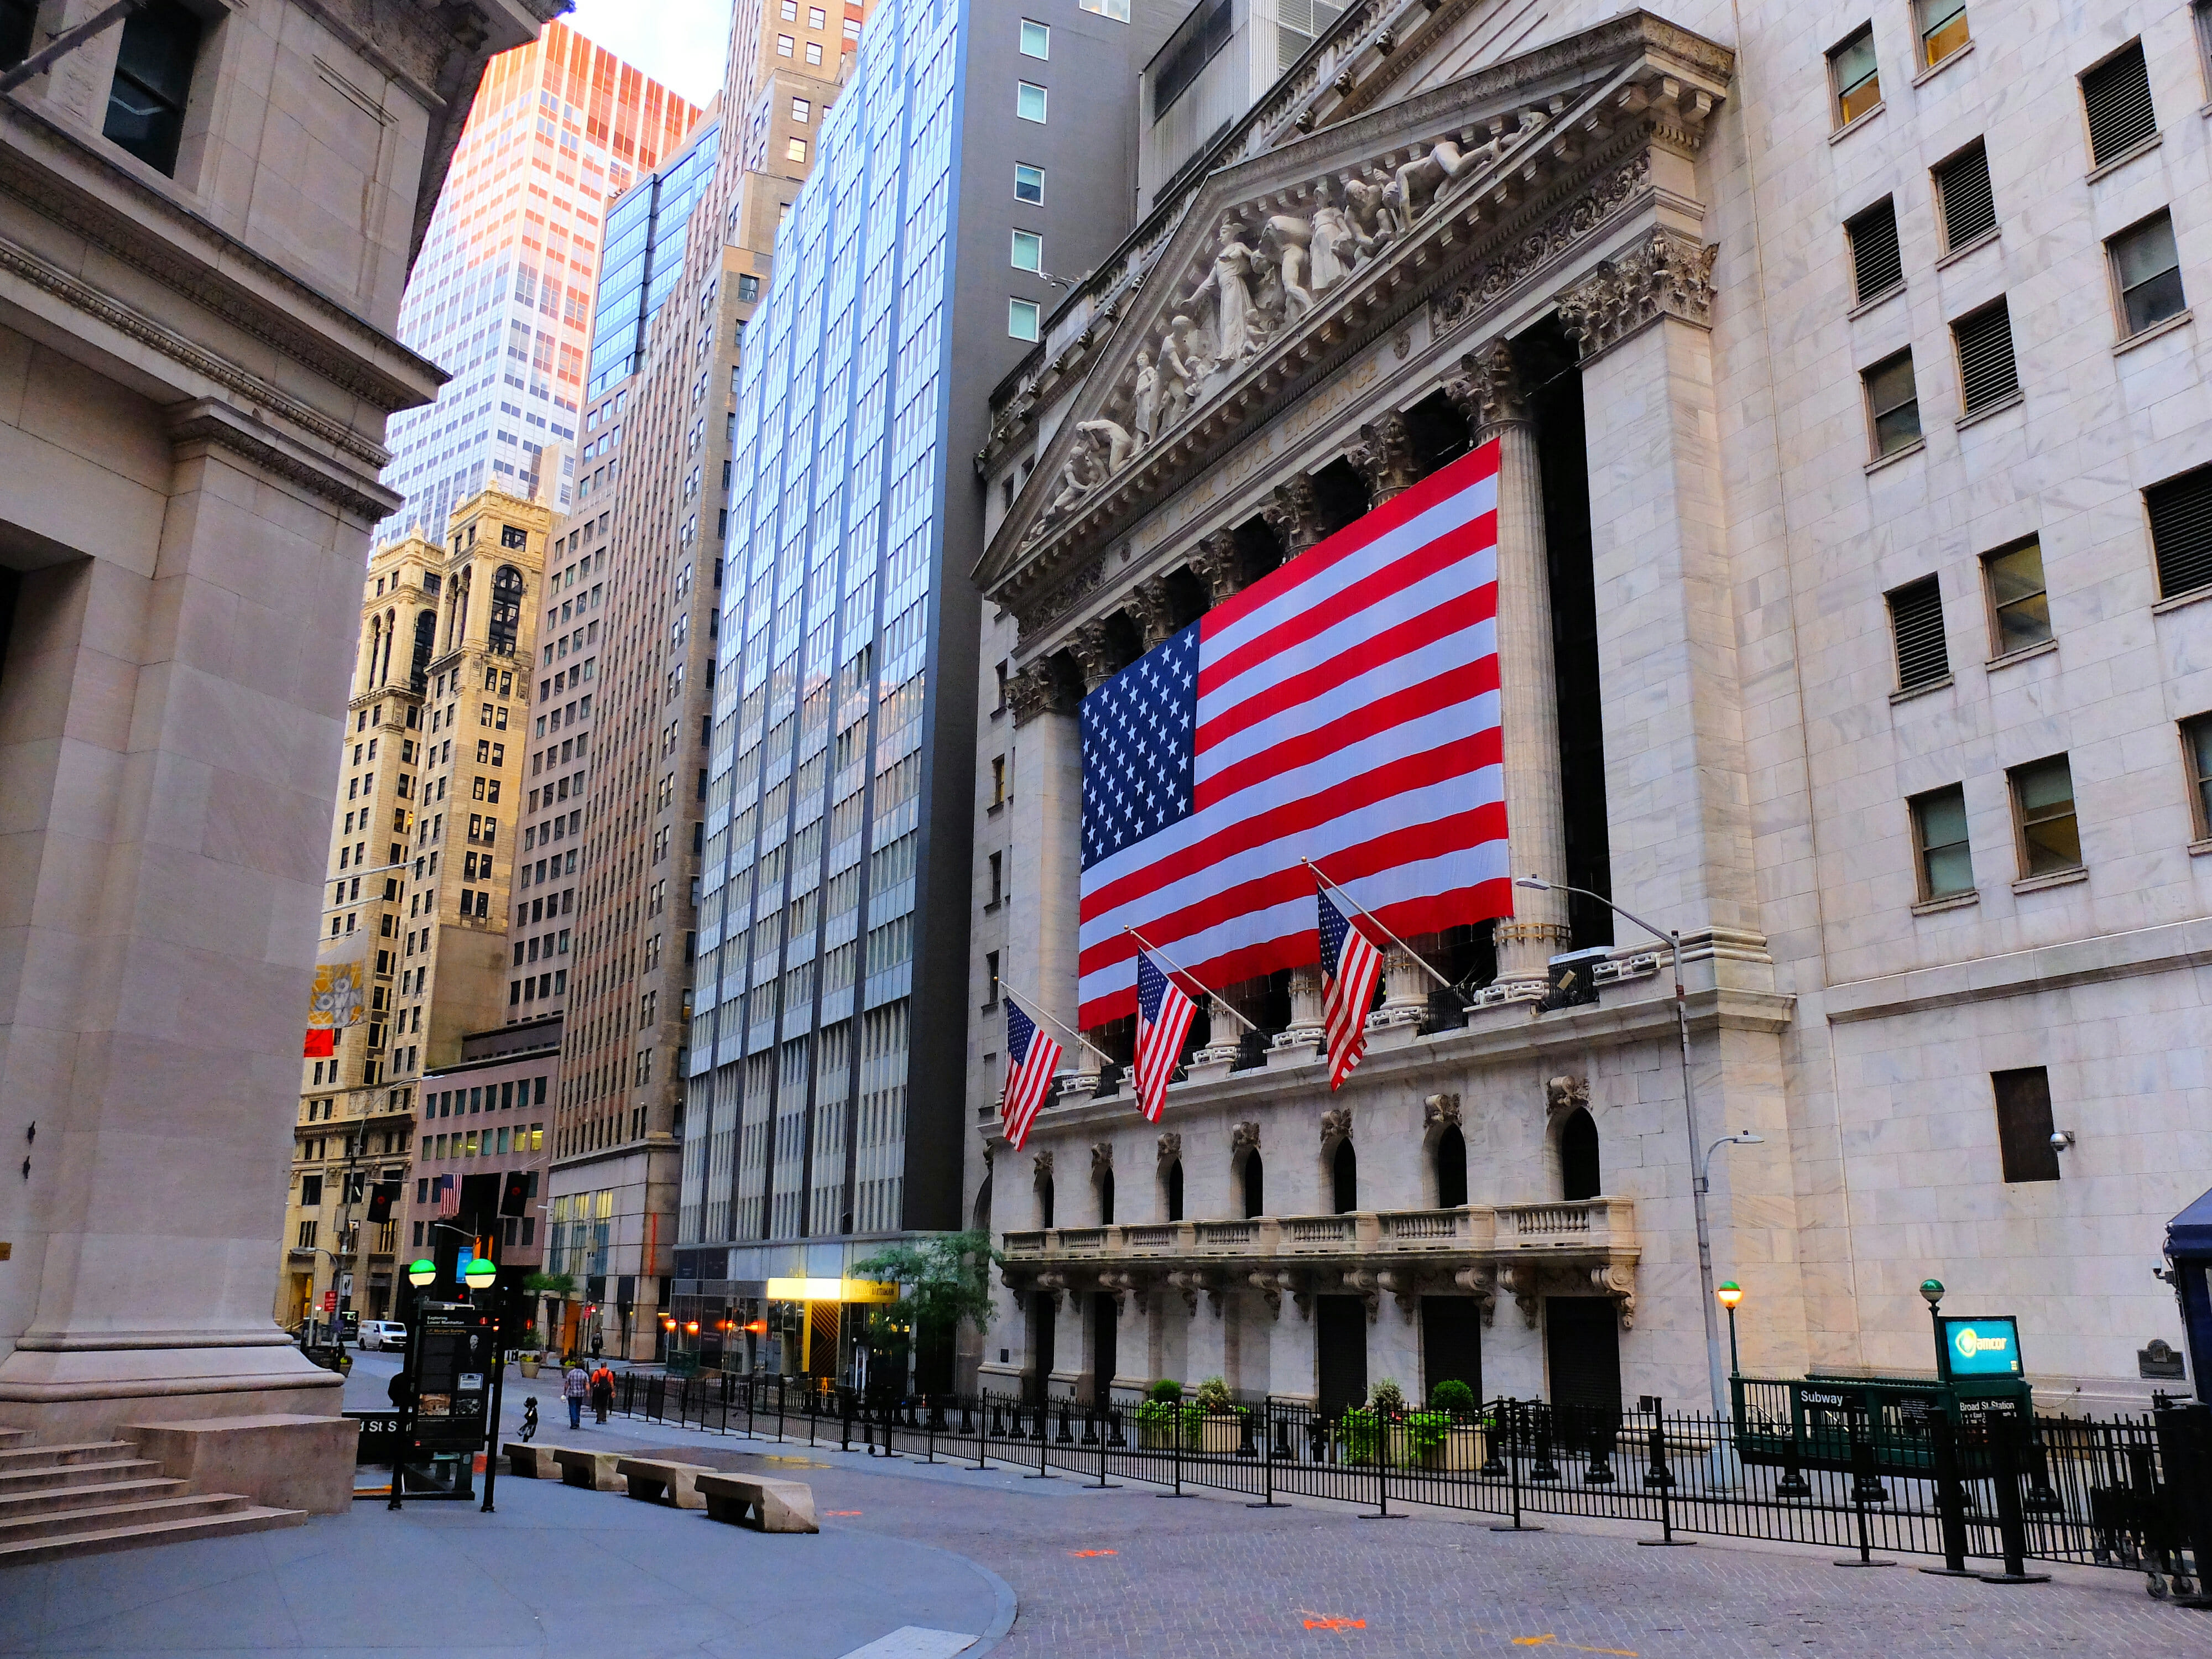 Wall Street Stock Exchange Flag in New York High Quality Wallpaper